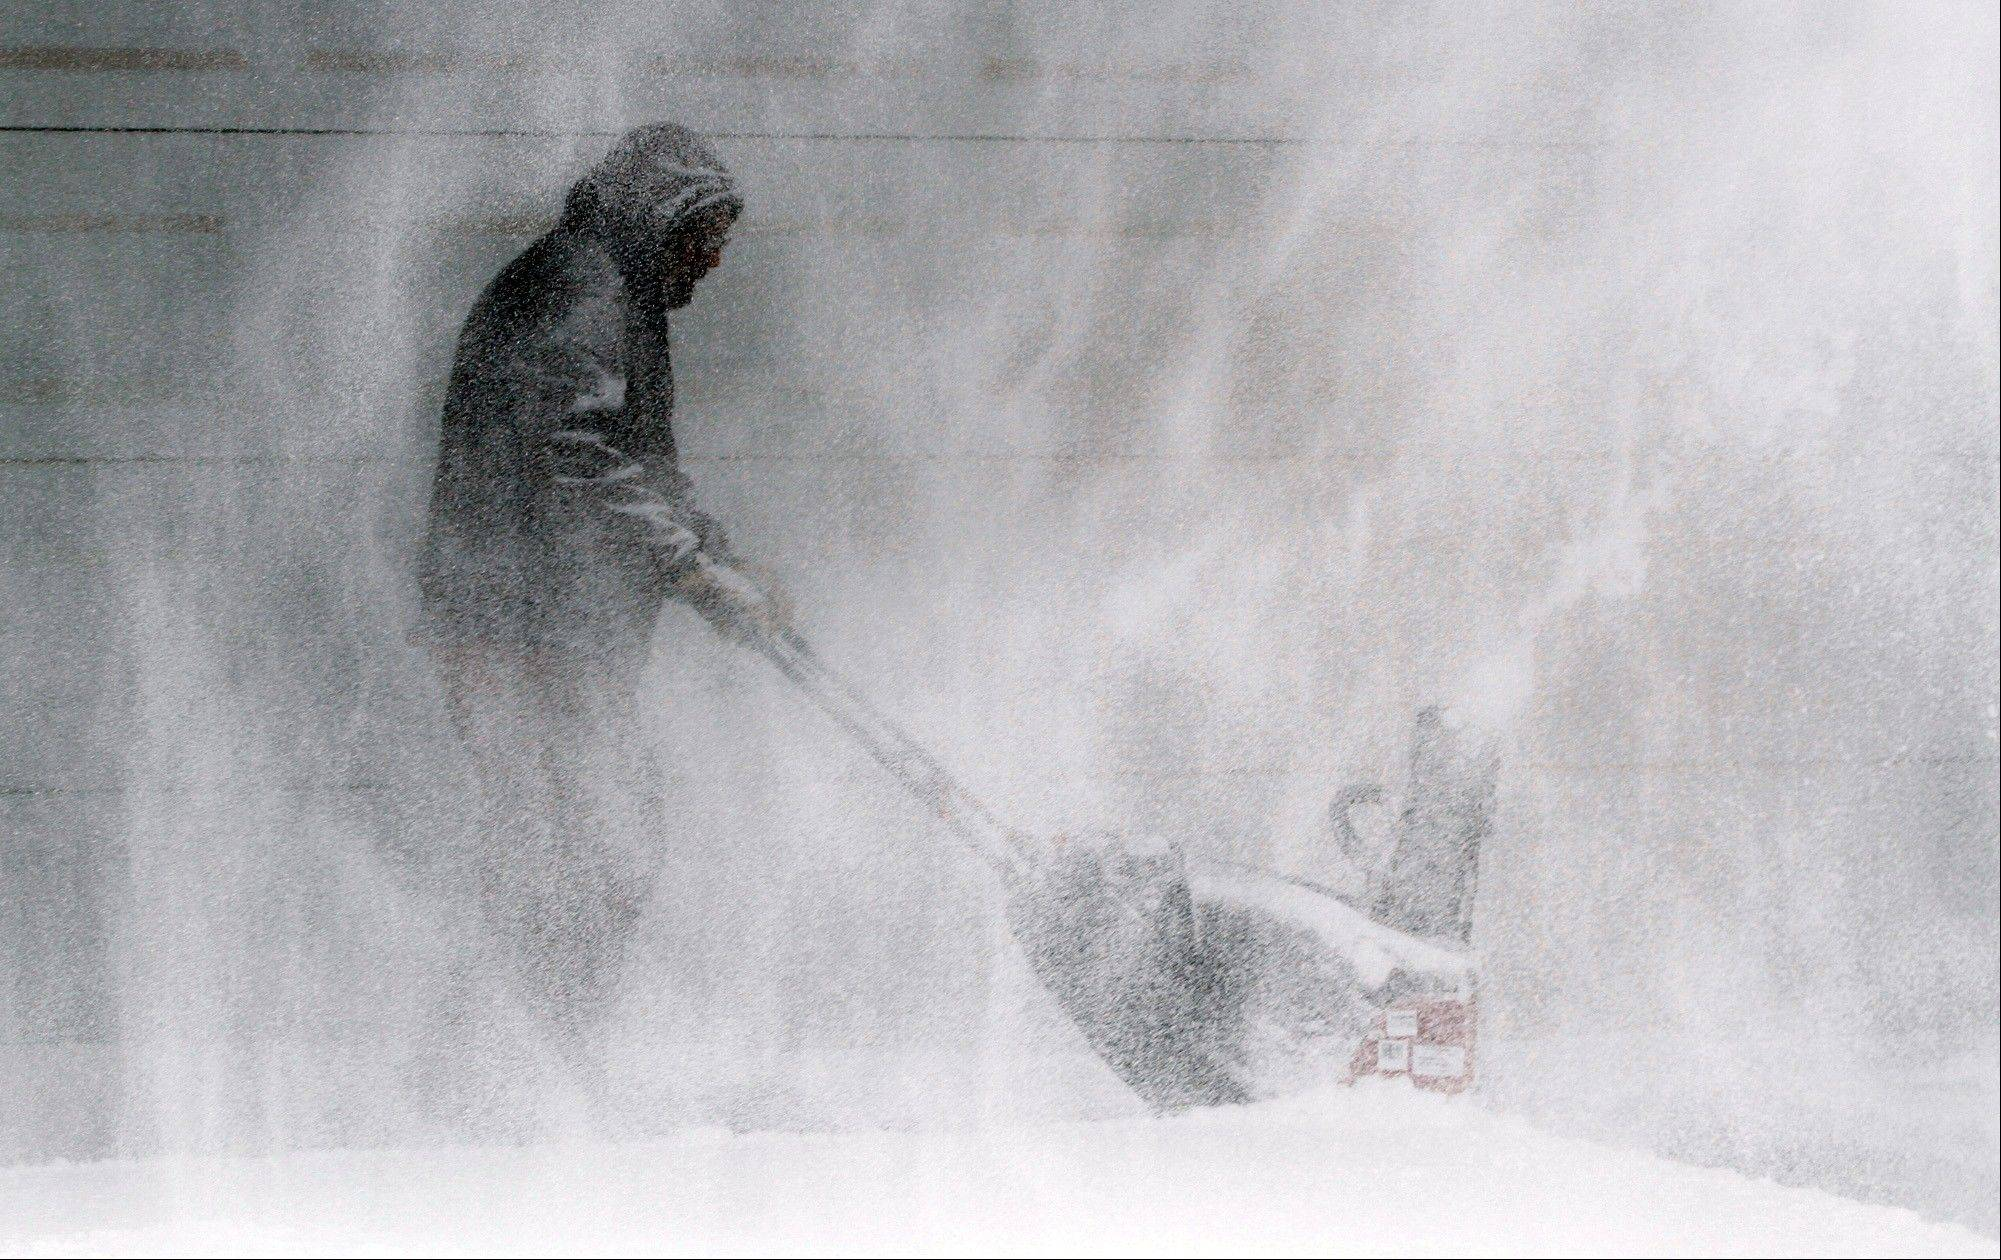 Tom McReynolds clears snow from a neighbors' house in Wichita, Kans., Thursday, Feb. 21, 2013. Kansas was the epicenter of the winter storm, with parts of Wichita buried under 13 inches of still-falling snow, but winter storm warnings stretched eastern Colorado through Illinois.